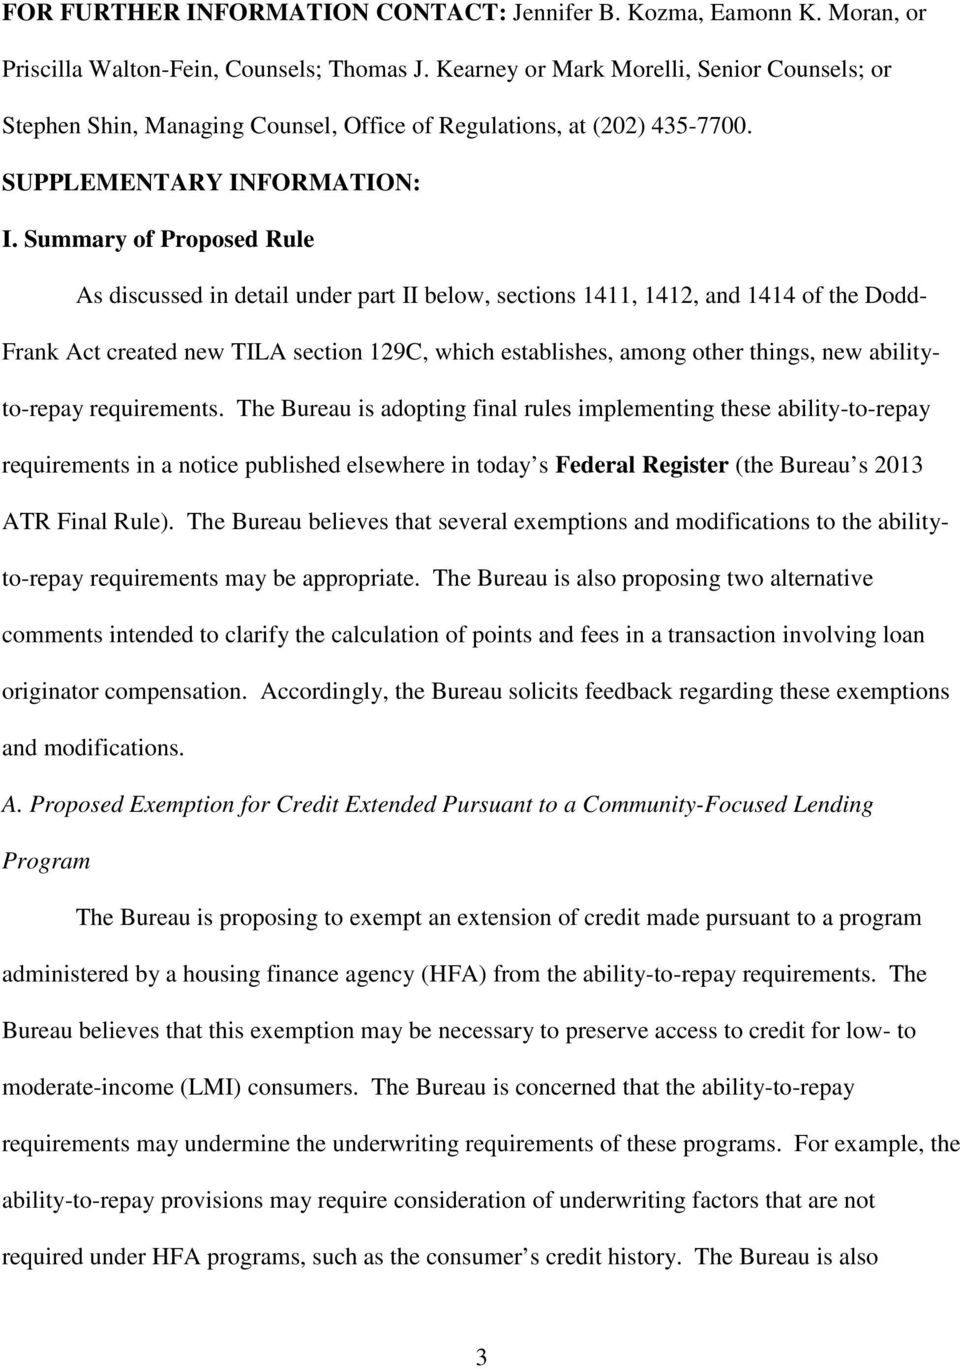 Summary of Proposed Rule As discussed in detail under part II below, sections 1411, 1412, and 1414 of the Dodd- Frank Act created new TILA section 129C, which establishes, among other things, new